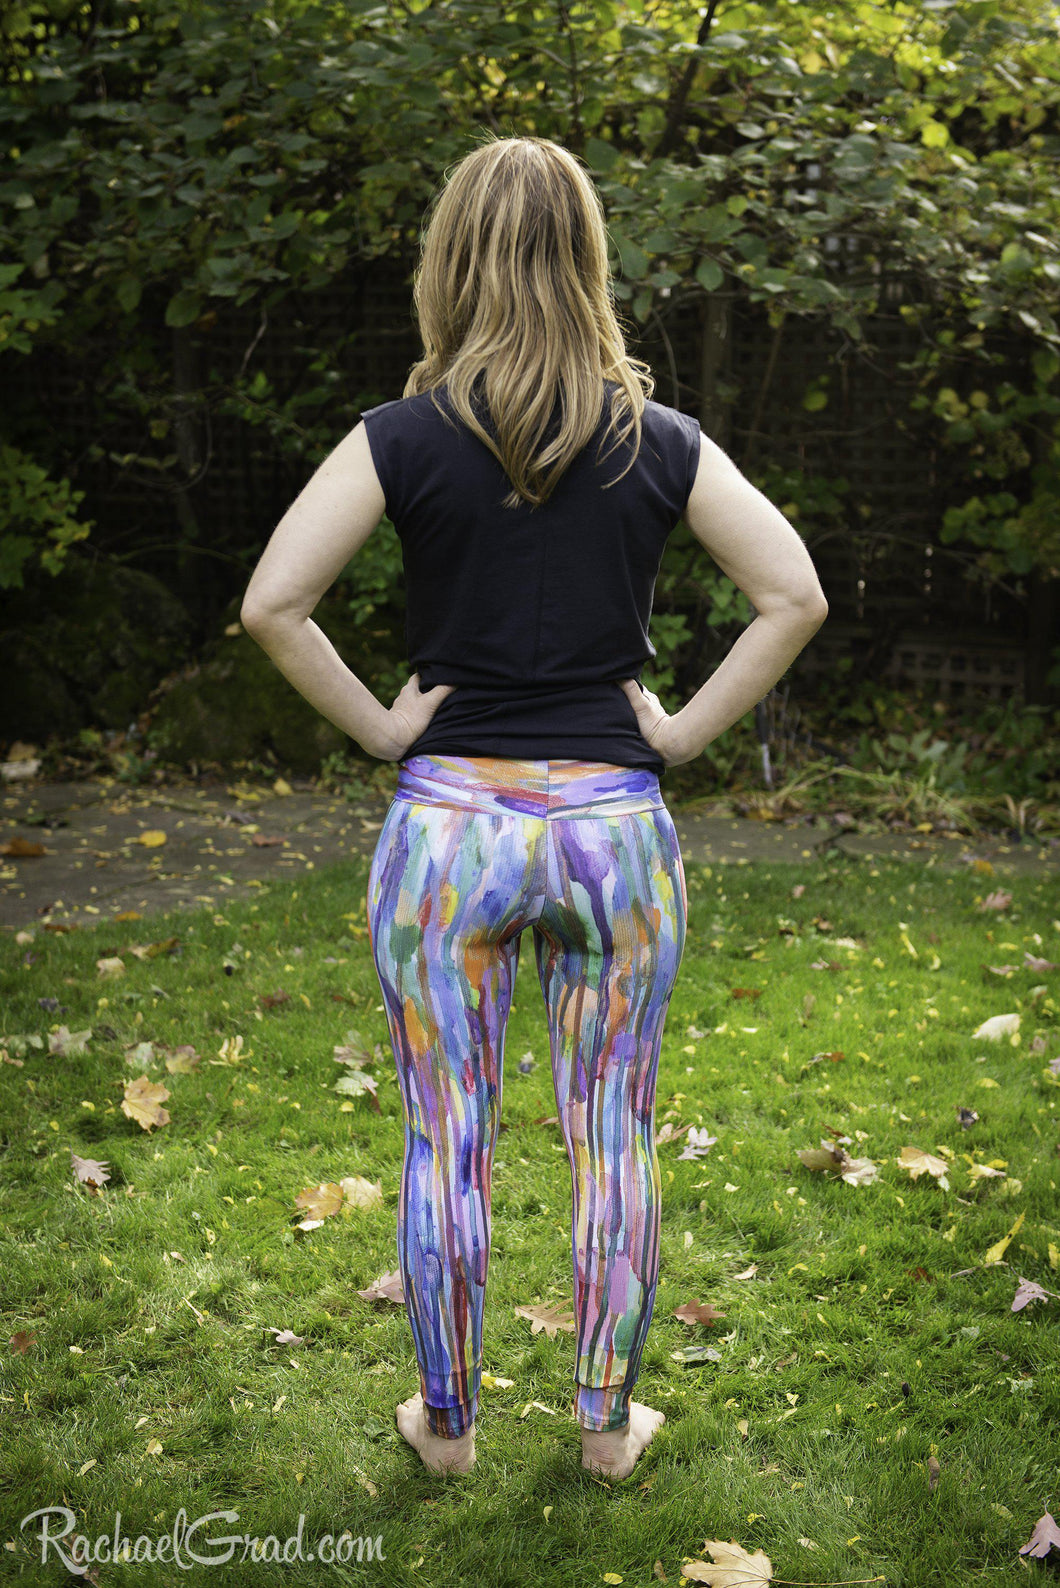 Women's Yoga Leggings - Rainbow-Leggings-Canadian Artist Rachael Grad